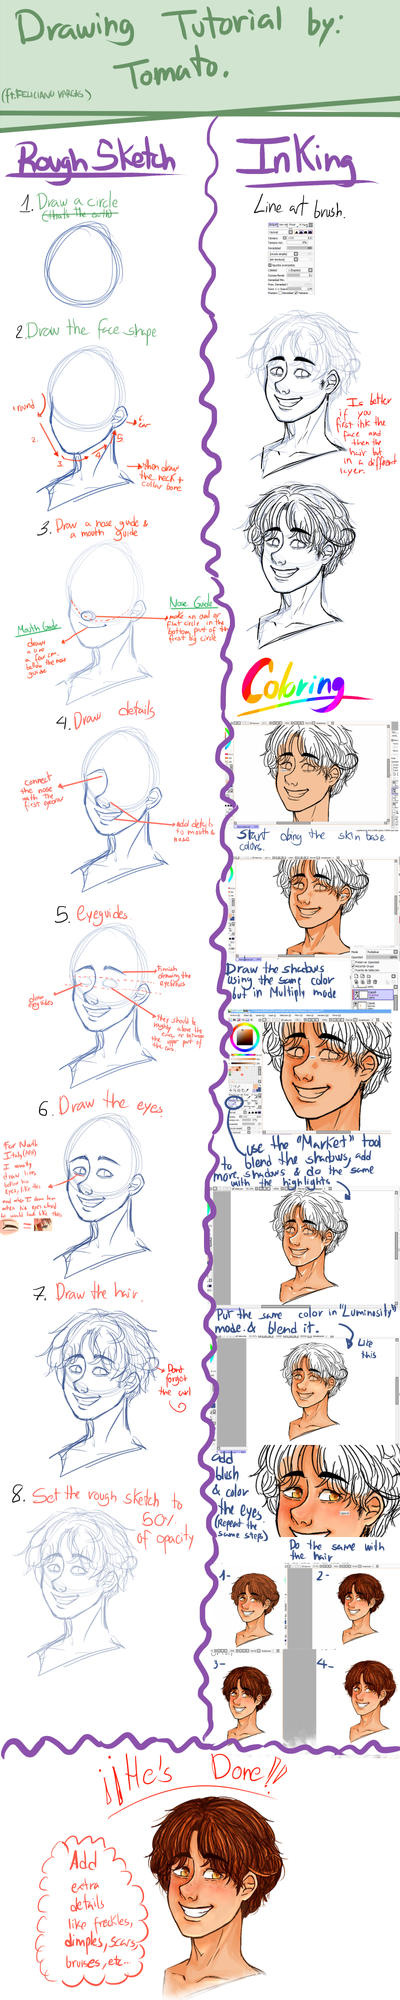 Drawing Tutorial - APH N. Italy by TomatoAndLettuce